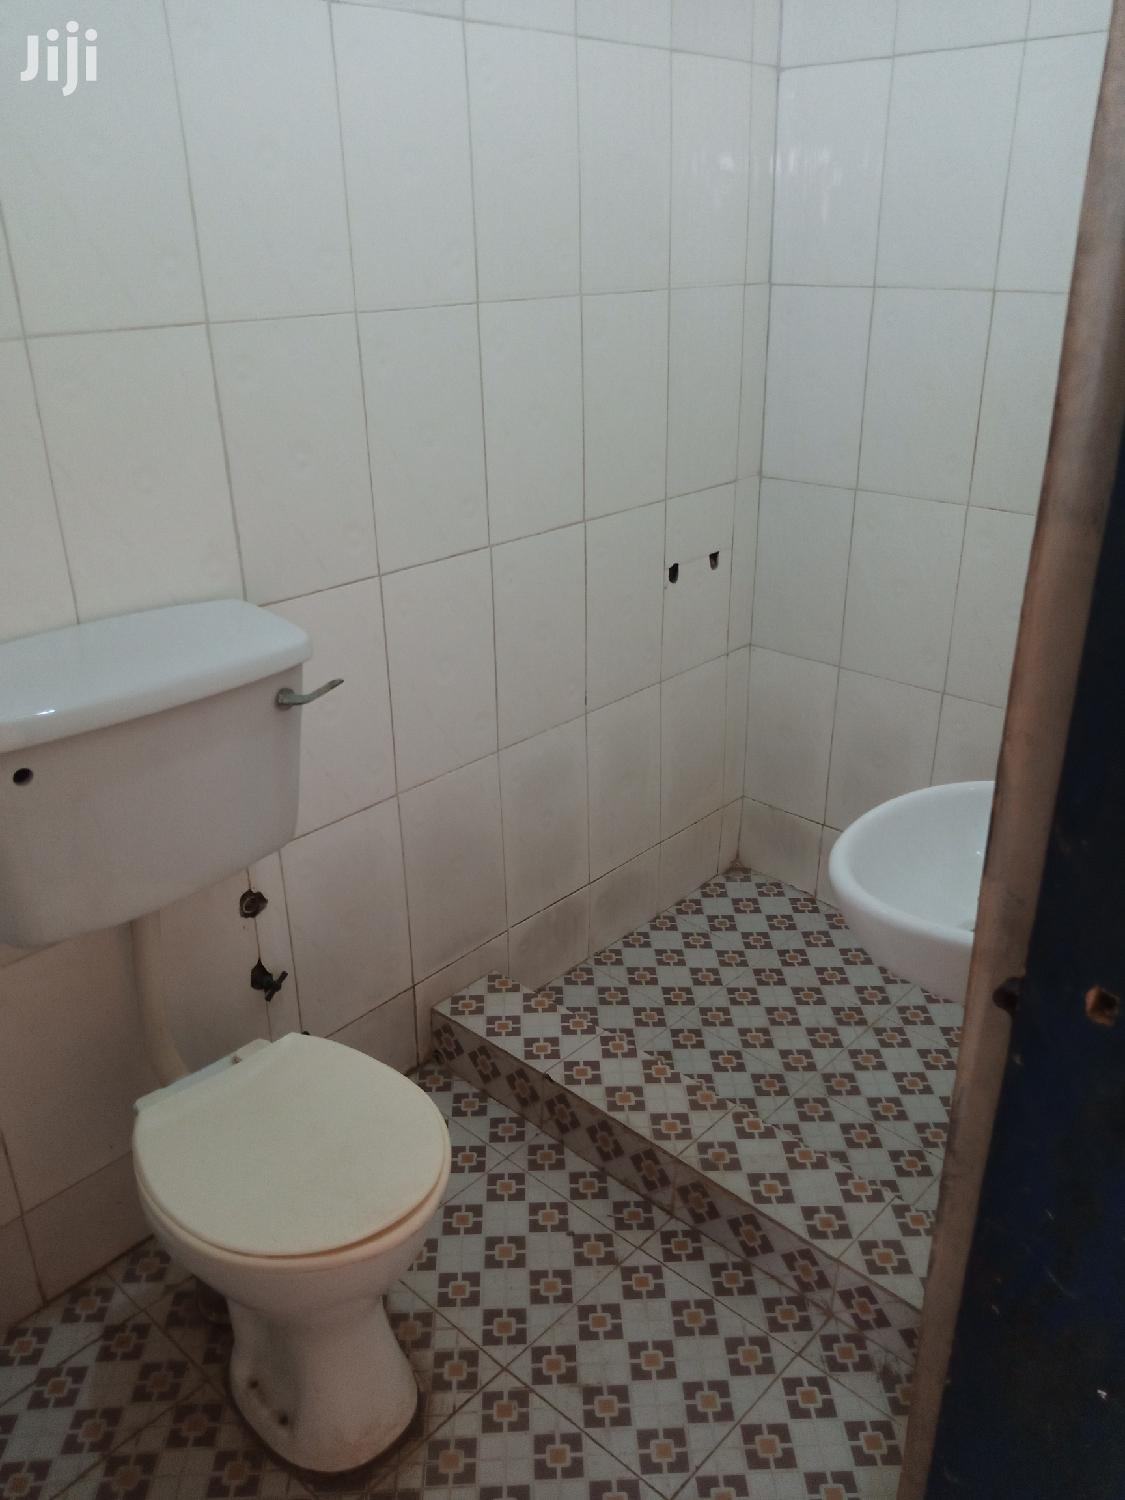 Chamber And Hall Self Contained To Let   Houses & Apartments For Rent for sale in East Legon, Greater Accra, Ghana